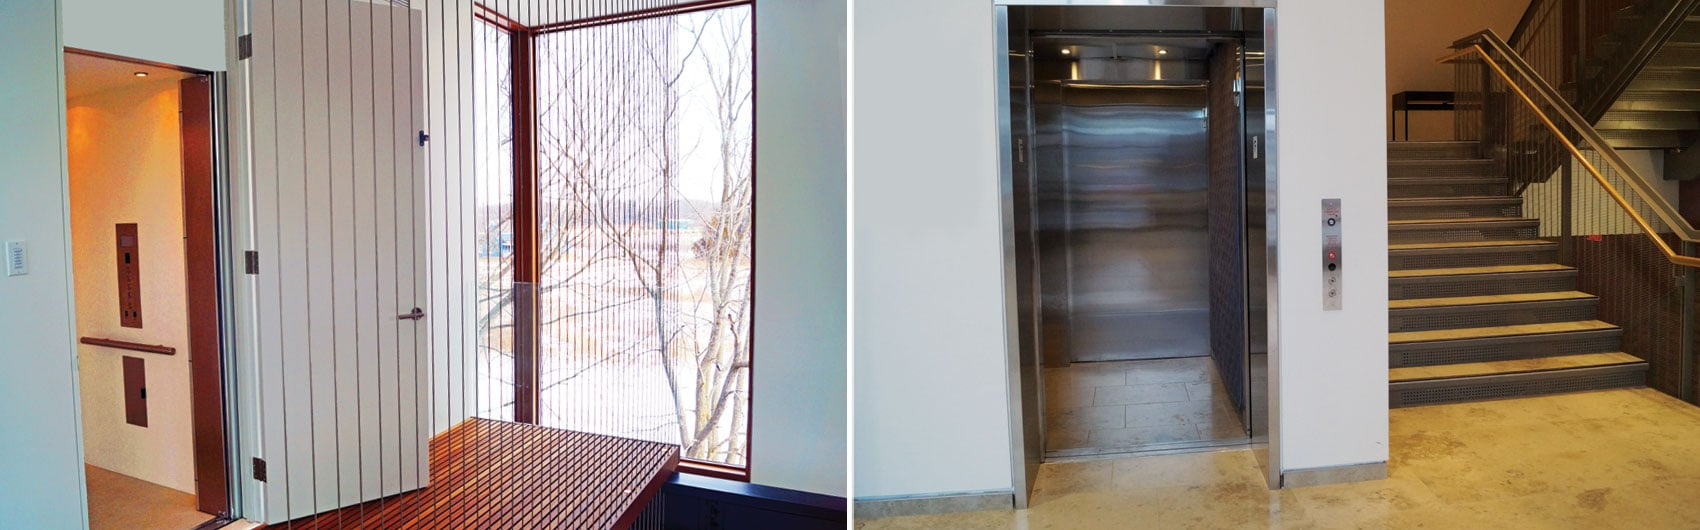 Install an Elevator in your home or building